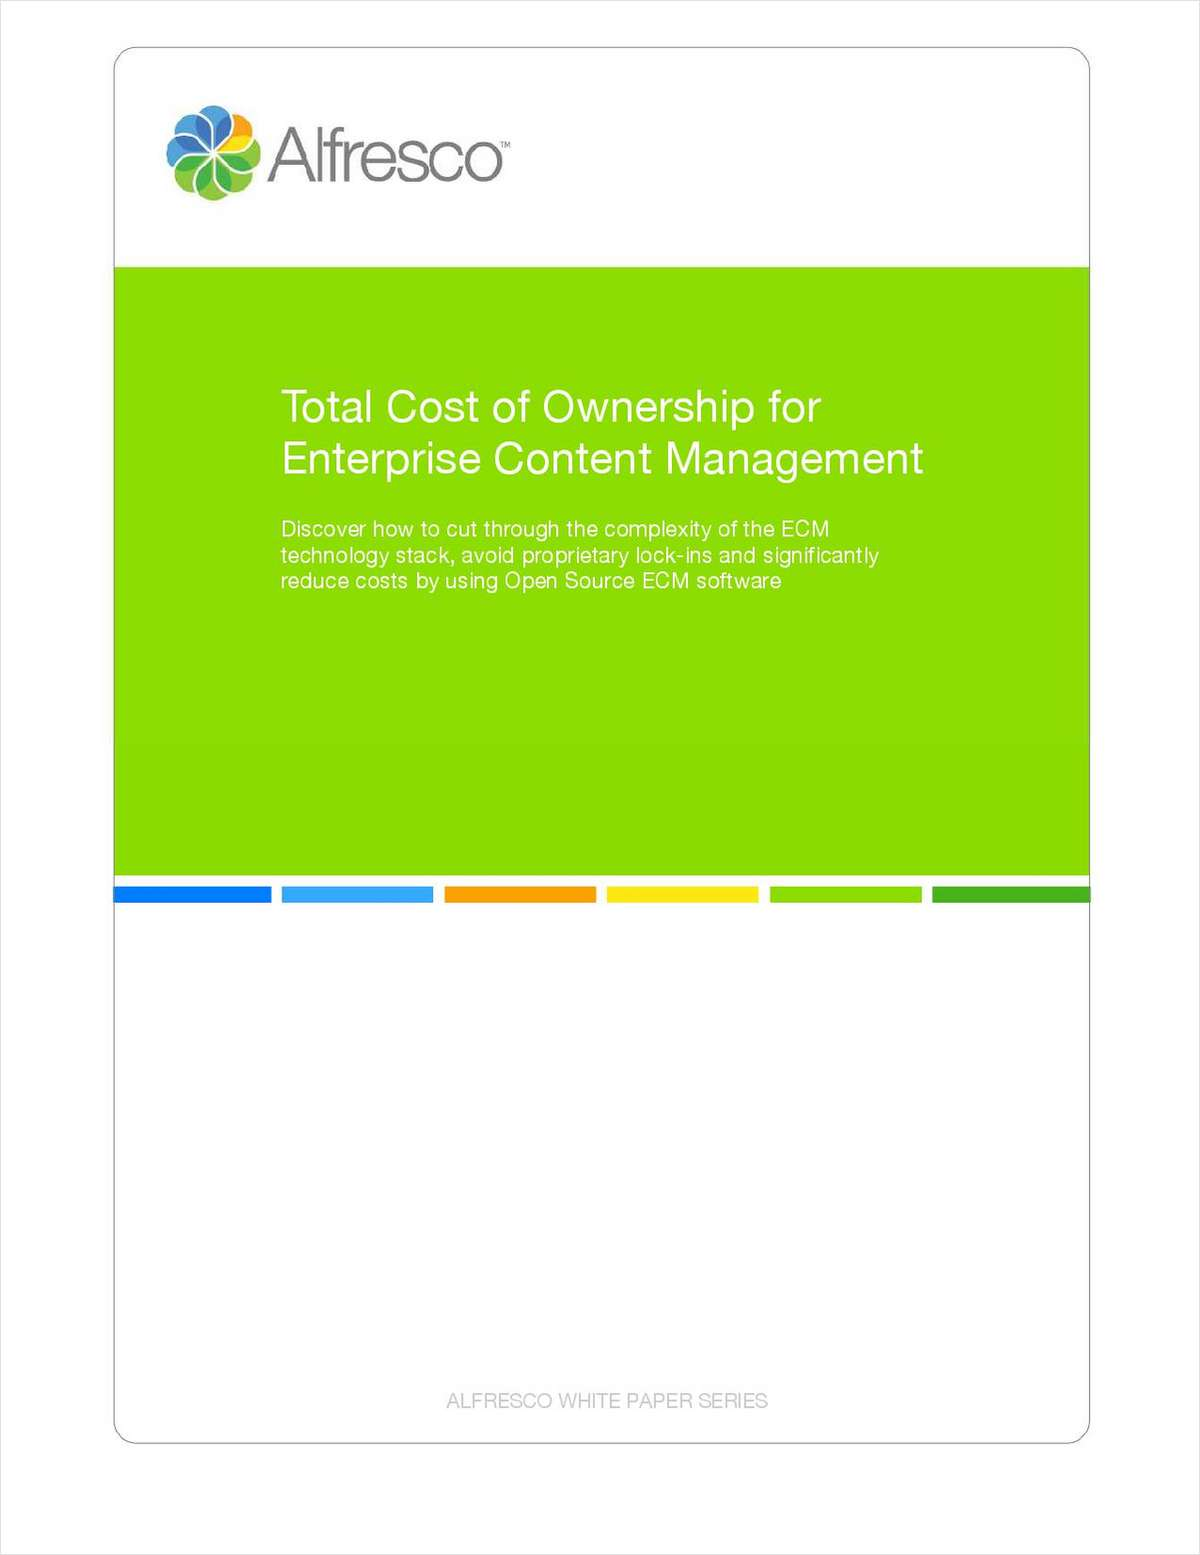 Total Cost of Ownership for Enterprise Content Management